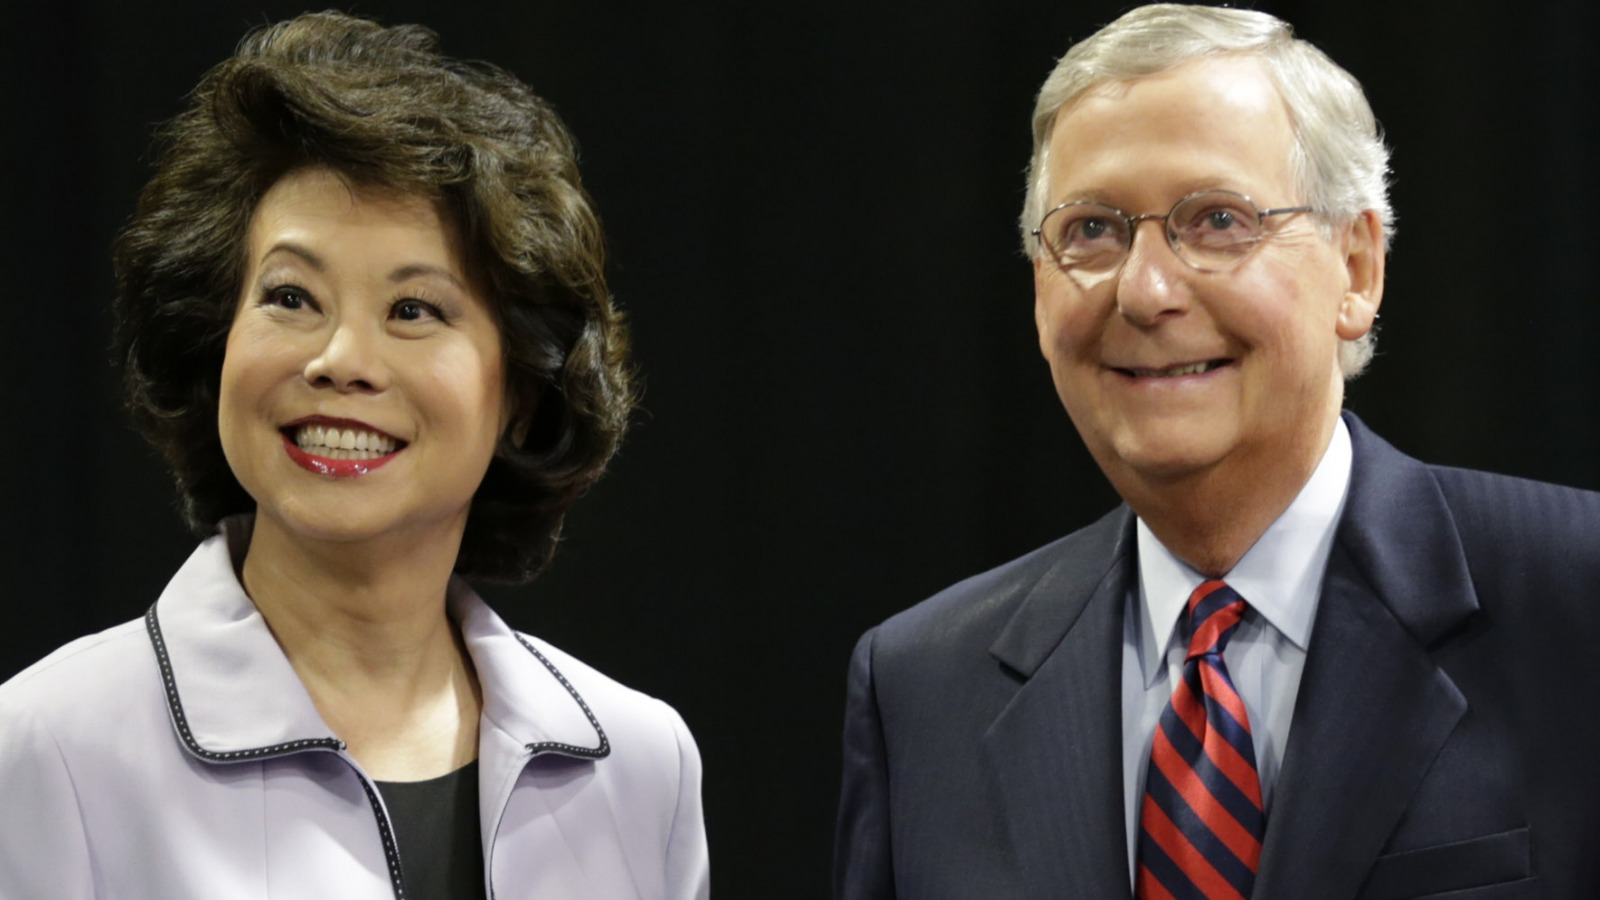 Details about Mitch McConnell and Elaine Chao